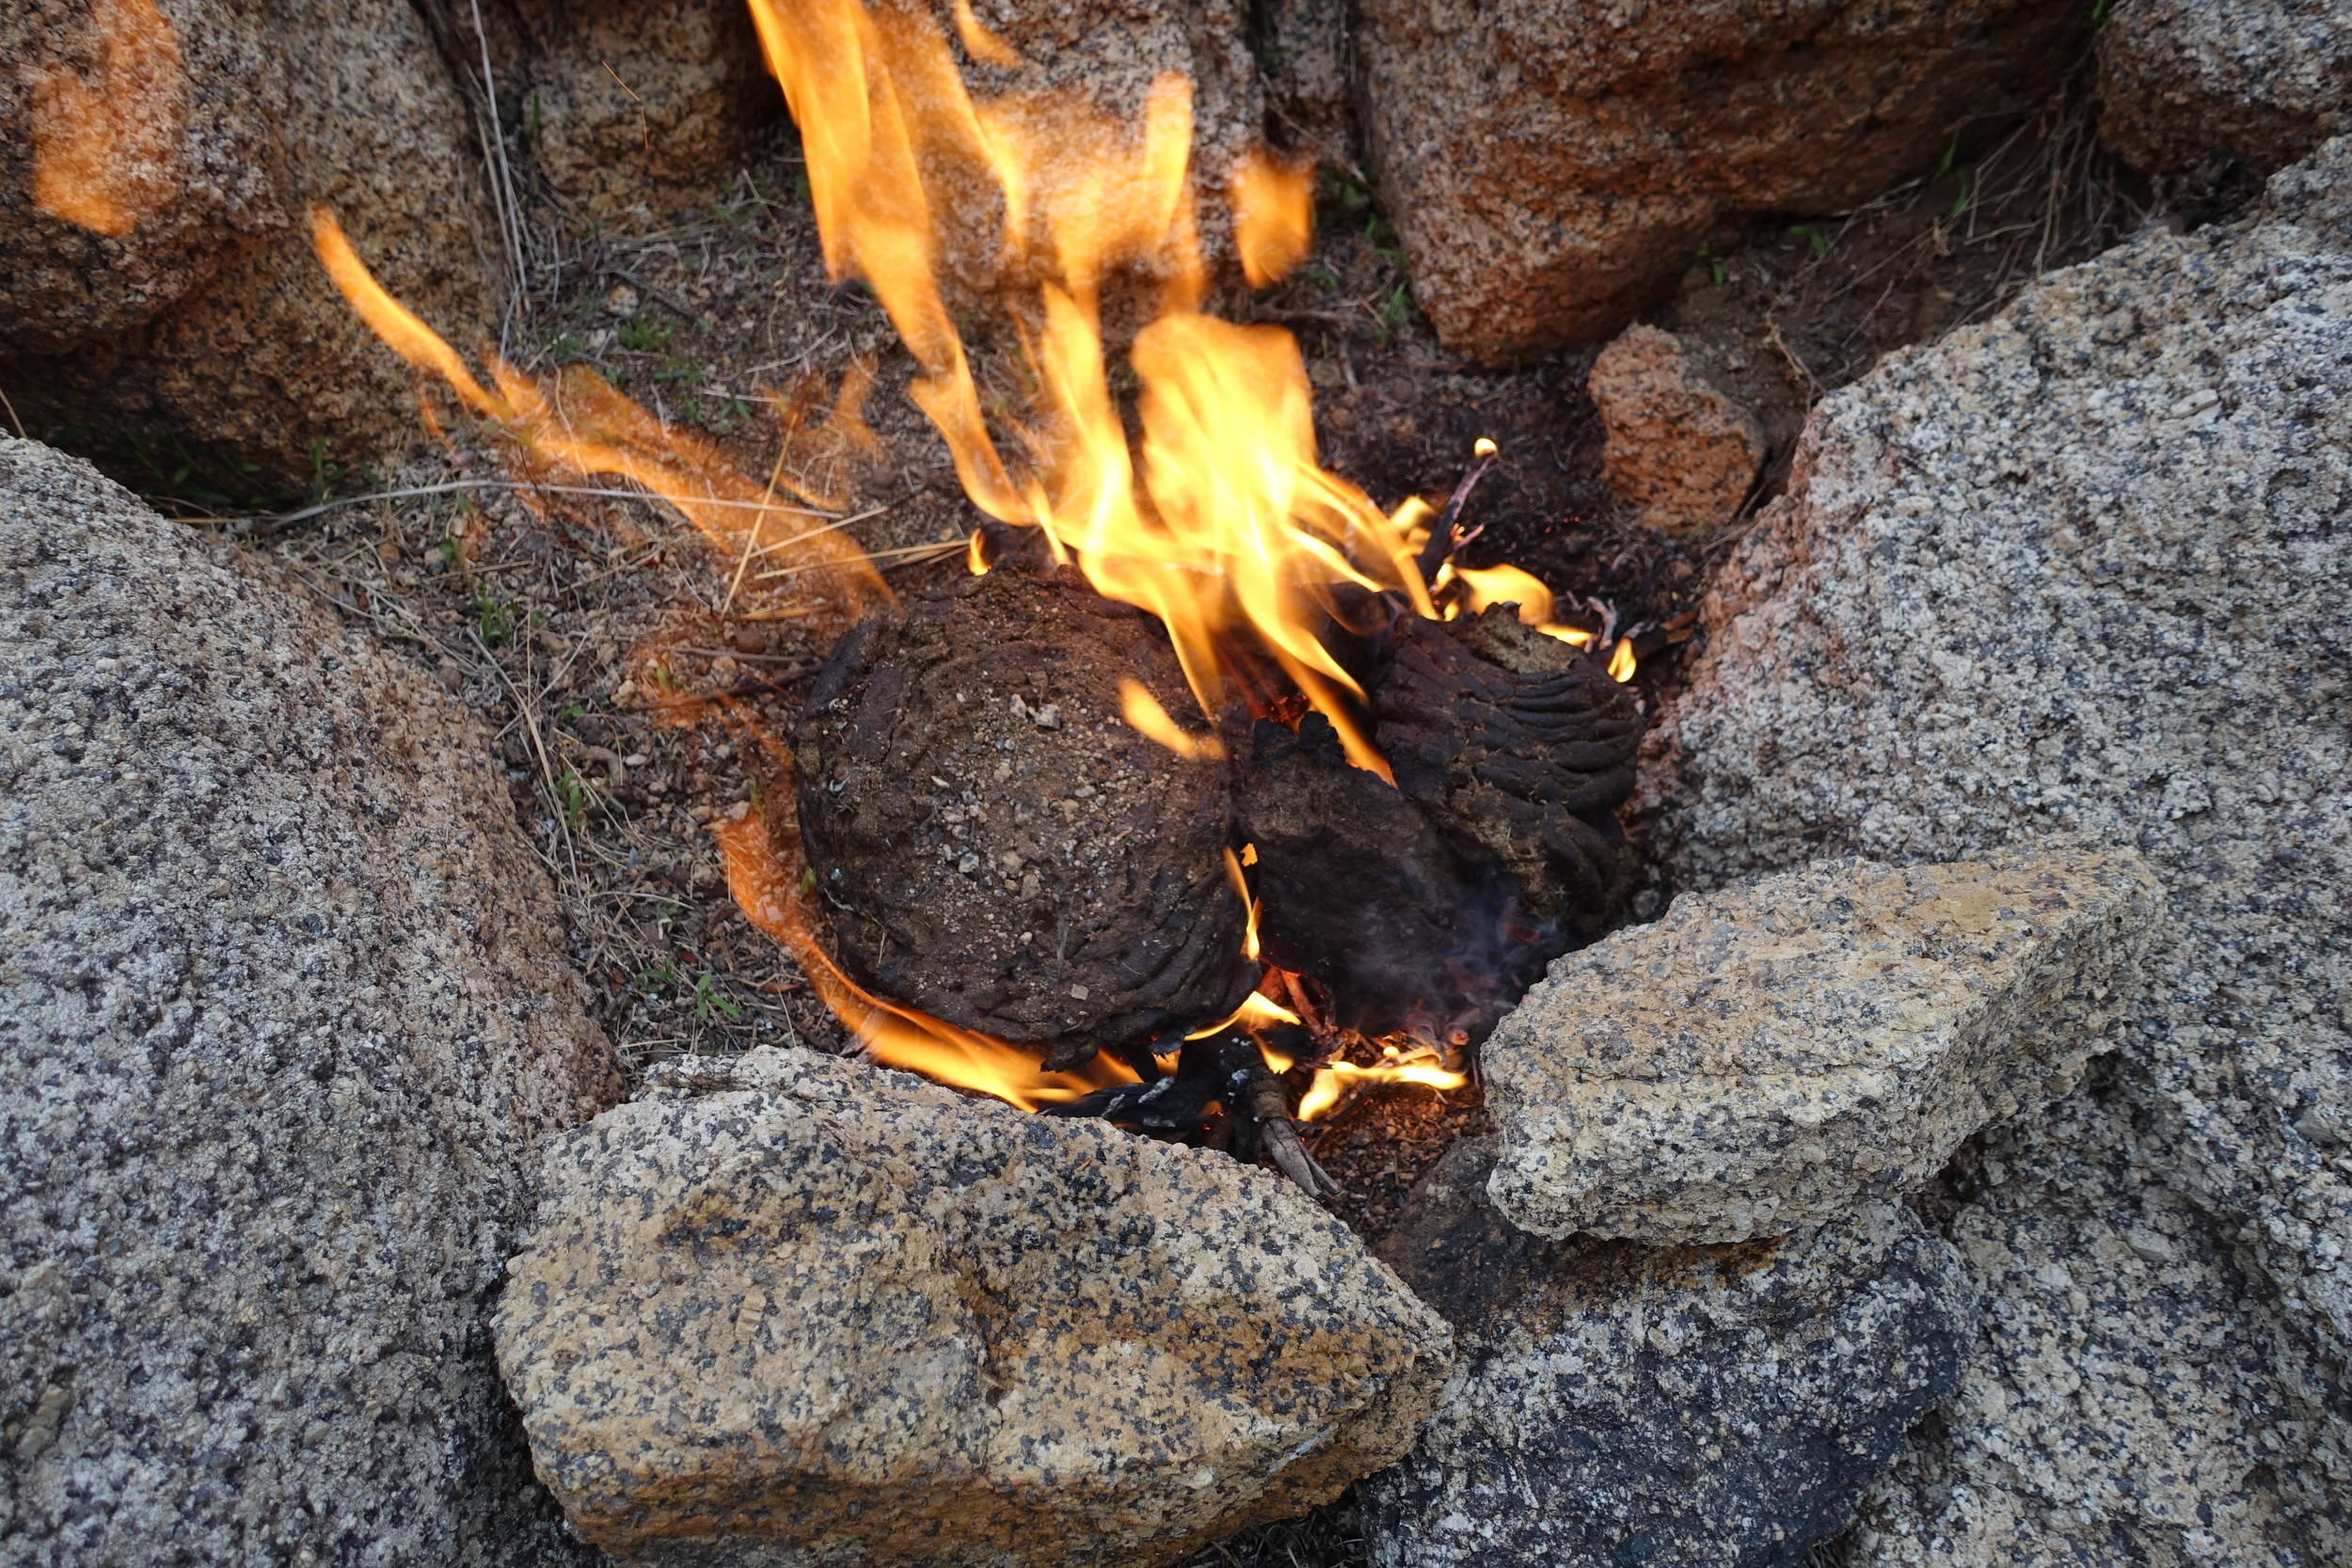 Nomads burn dung to make guest gers warm: an exemple of their tradition to efficiently use ressources.